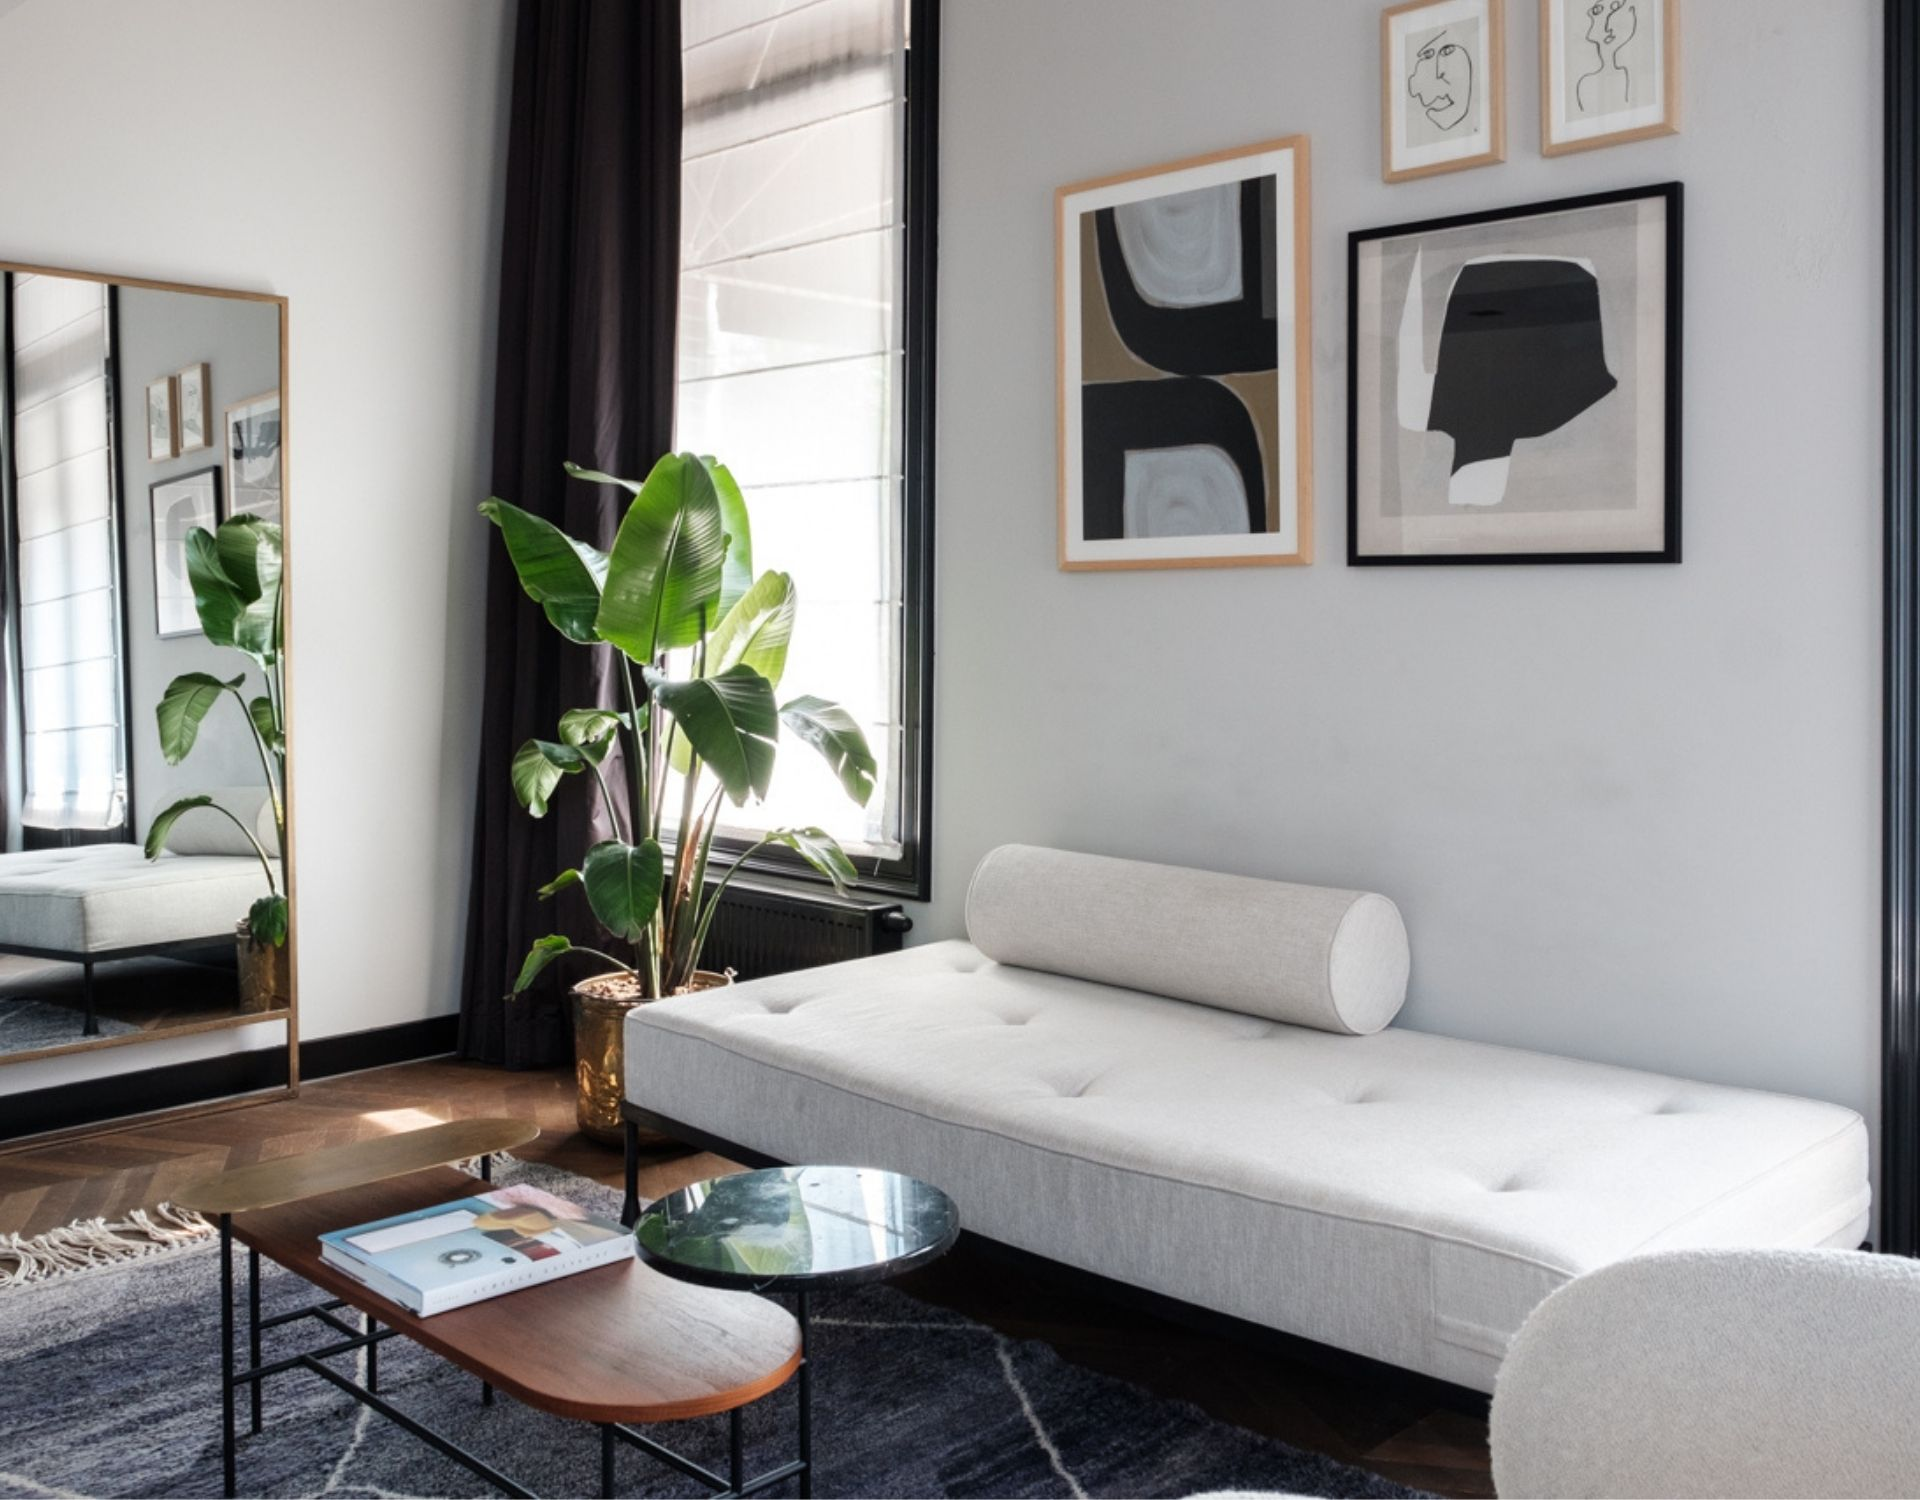 couch, magazine on coffee table with a mirror, plants and art on the wall